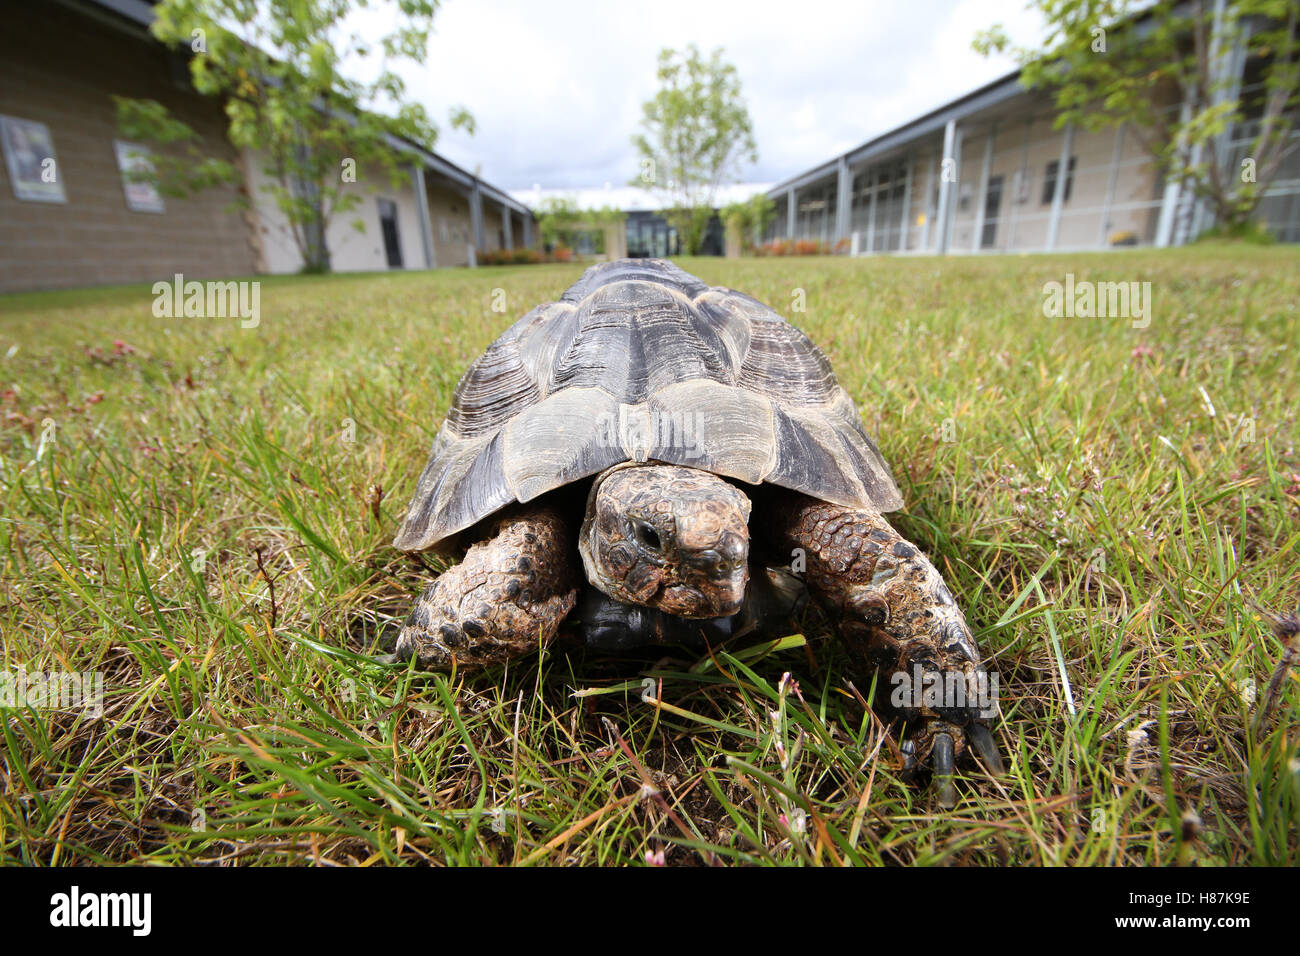 tortoise in garden Stock Photo